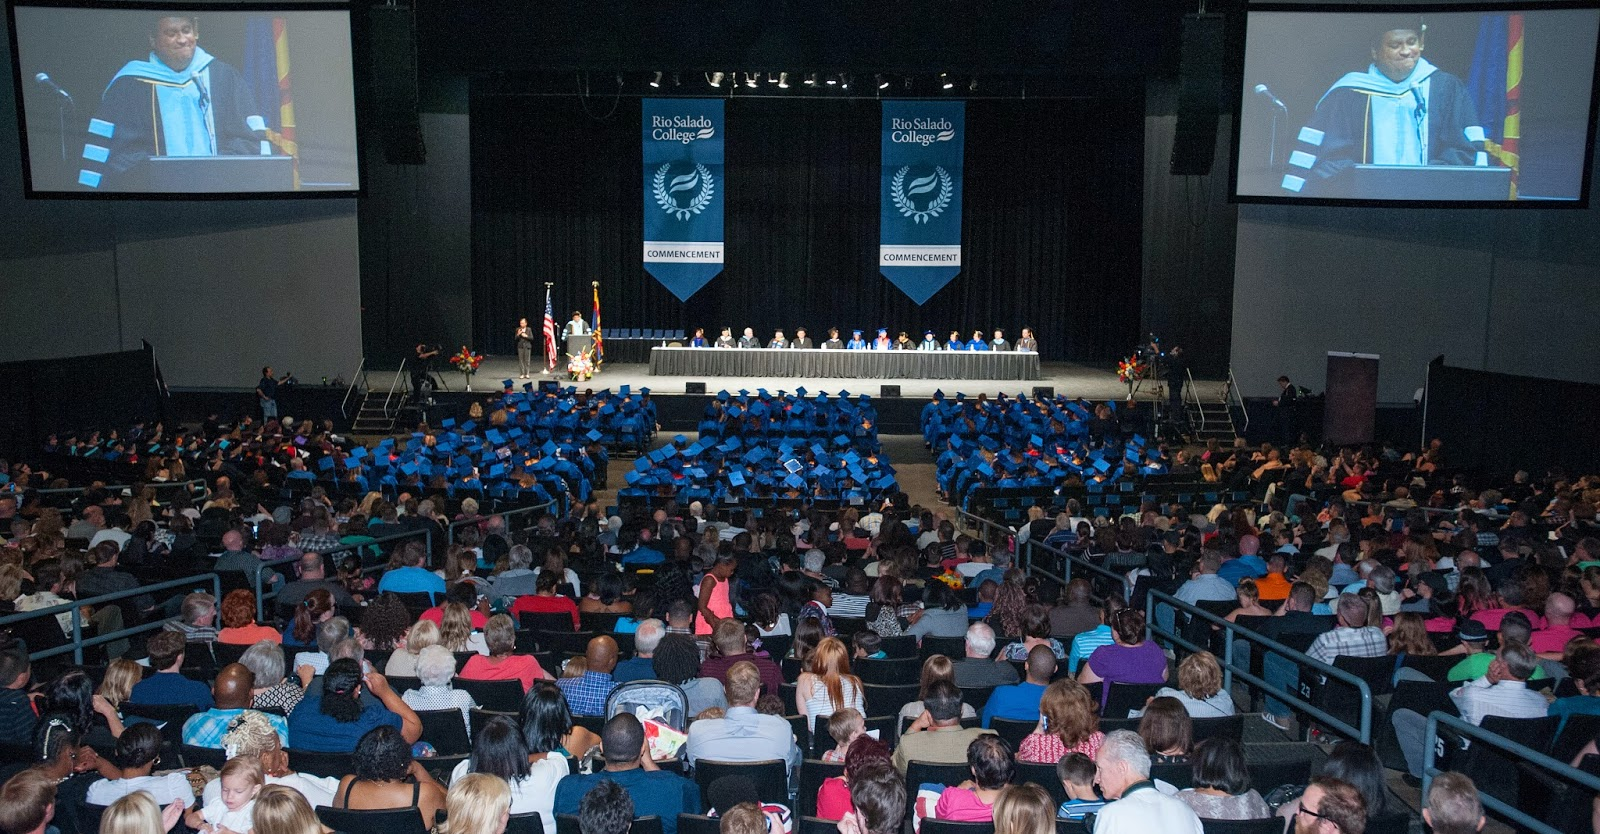 image from 2014 Commencement